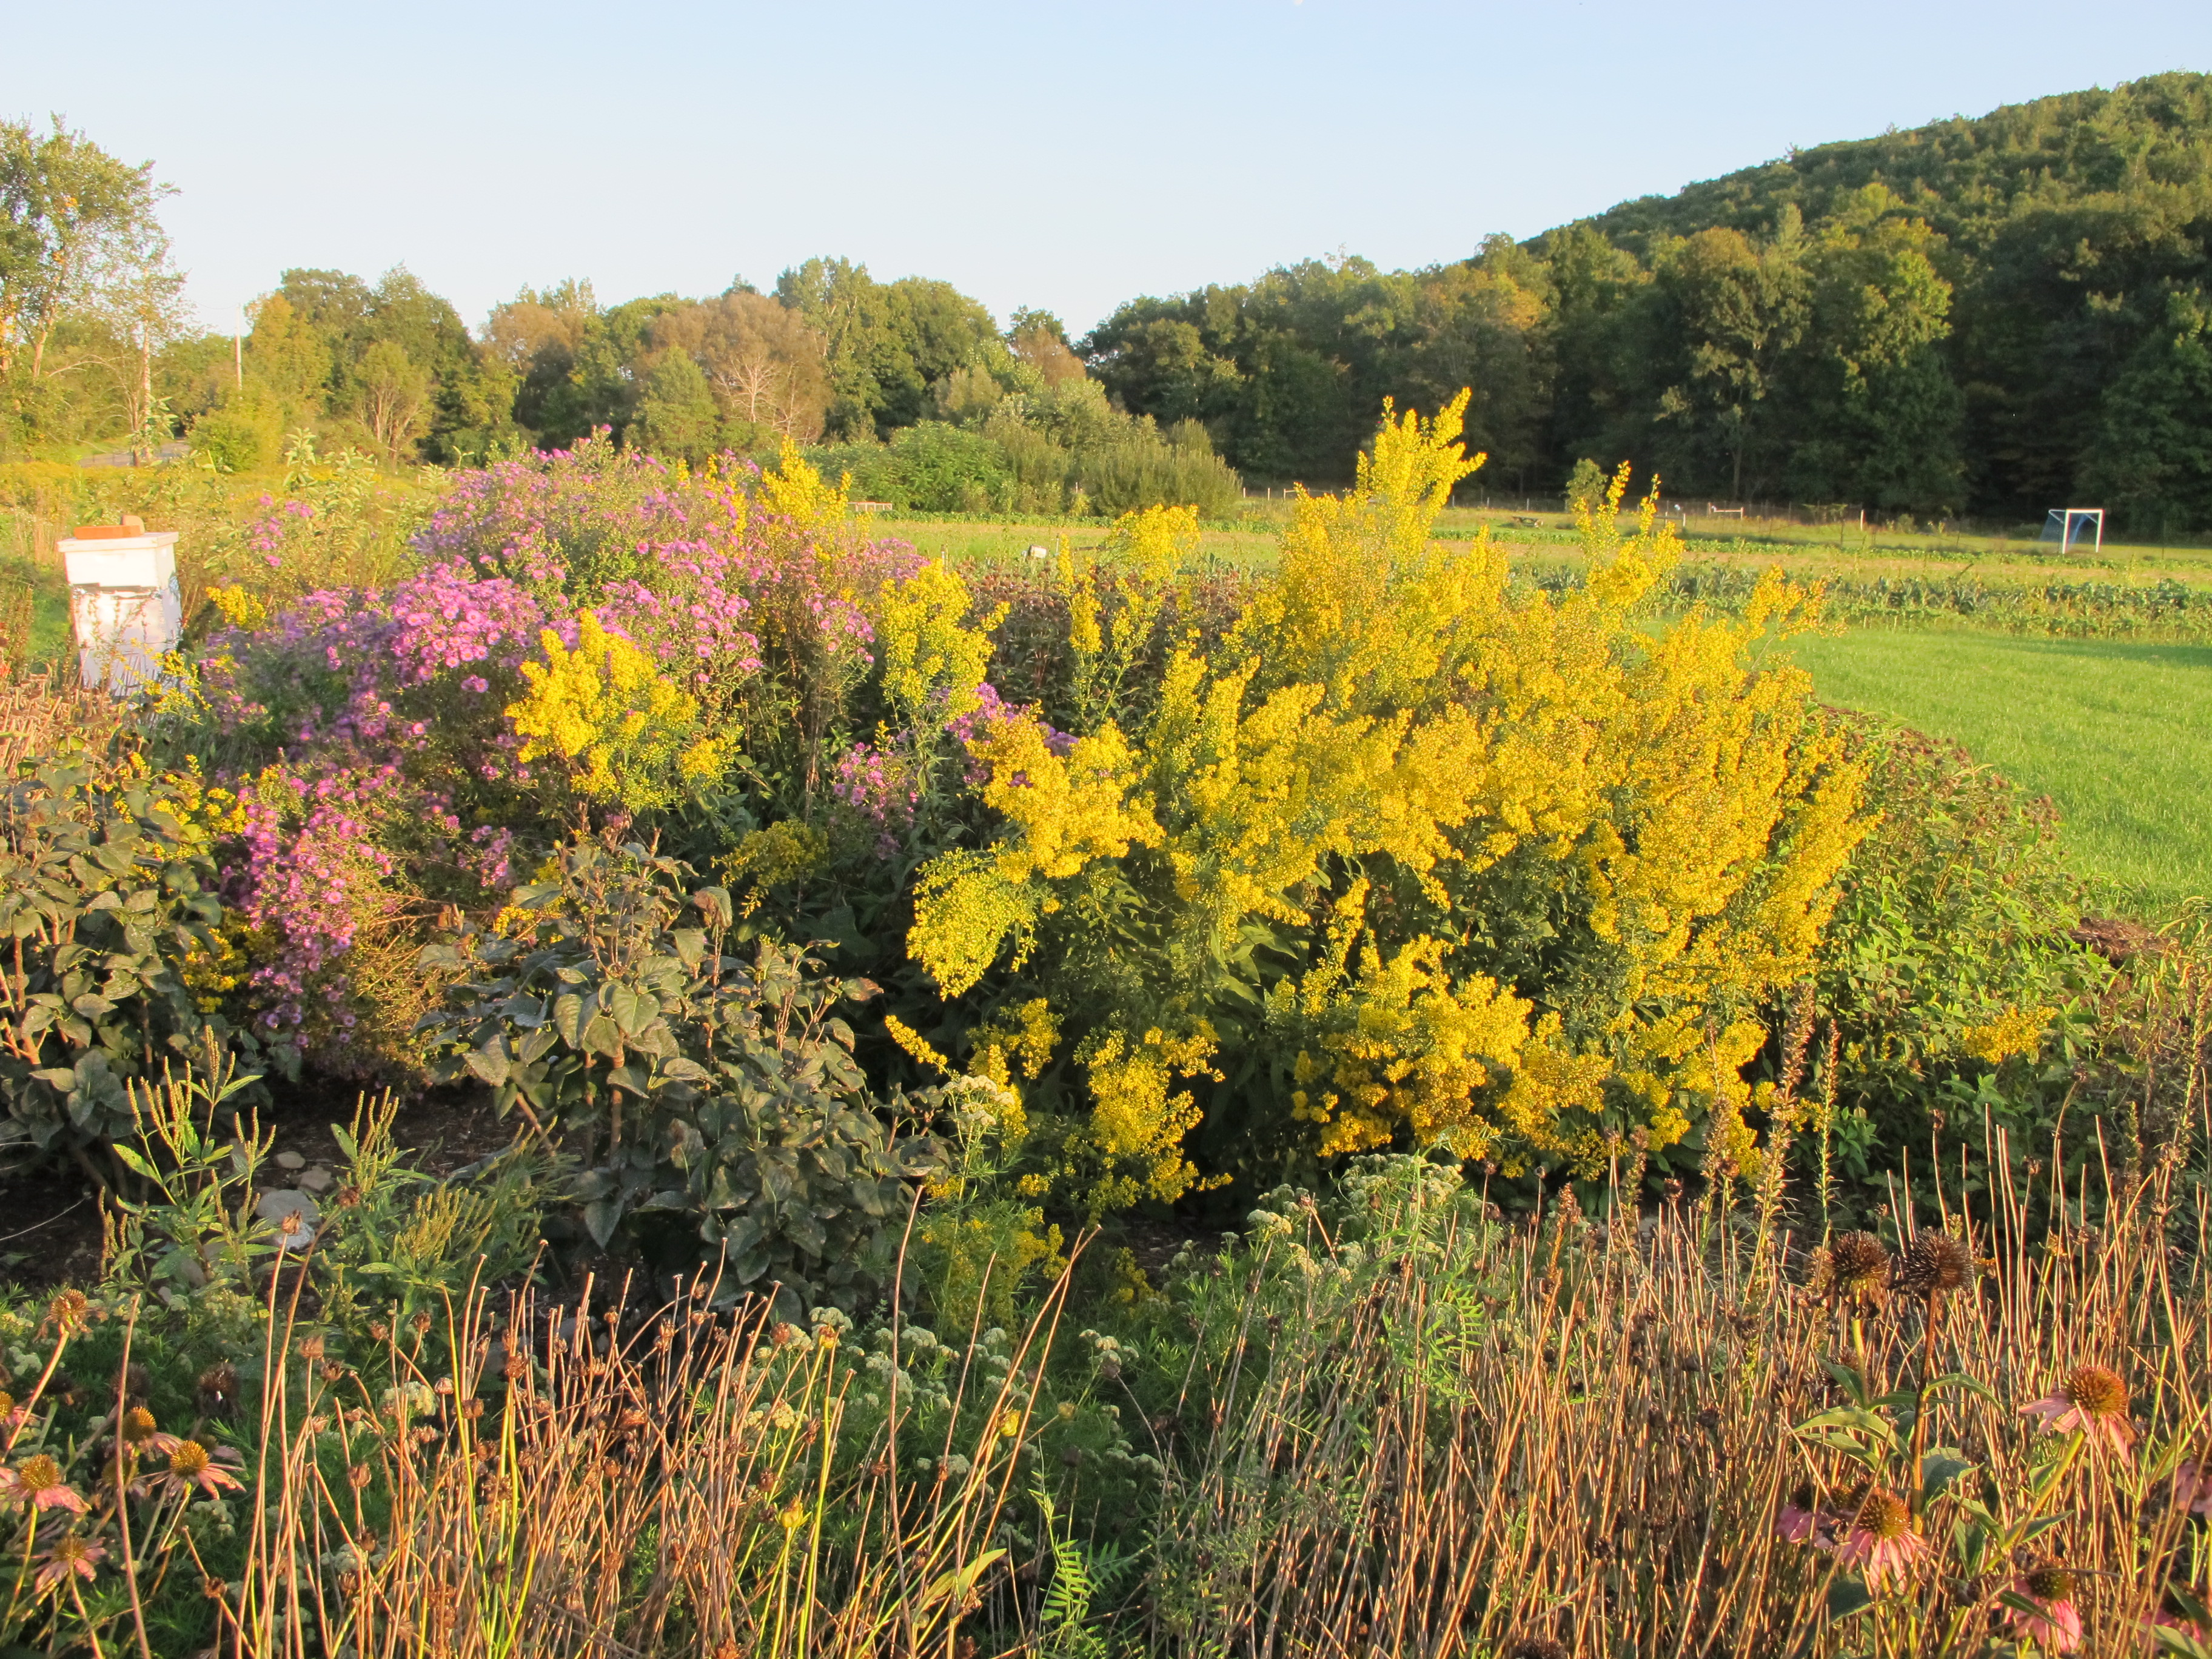 yellow goldenrod flowers spill out of the pollinator patch against a backdrop of purple aster flowers